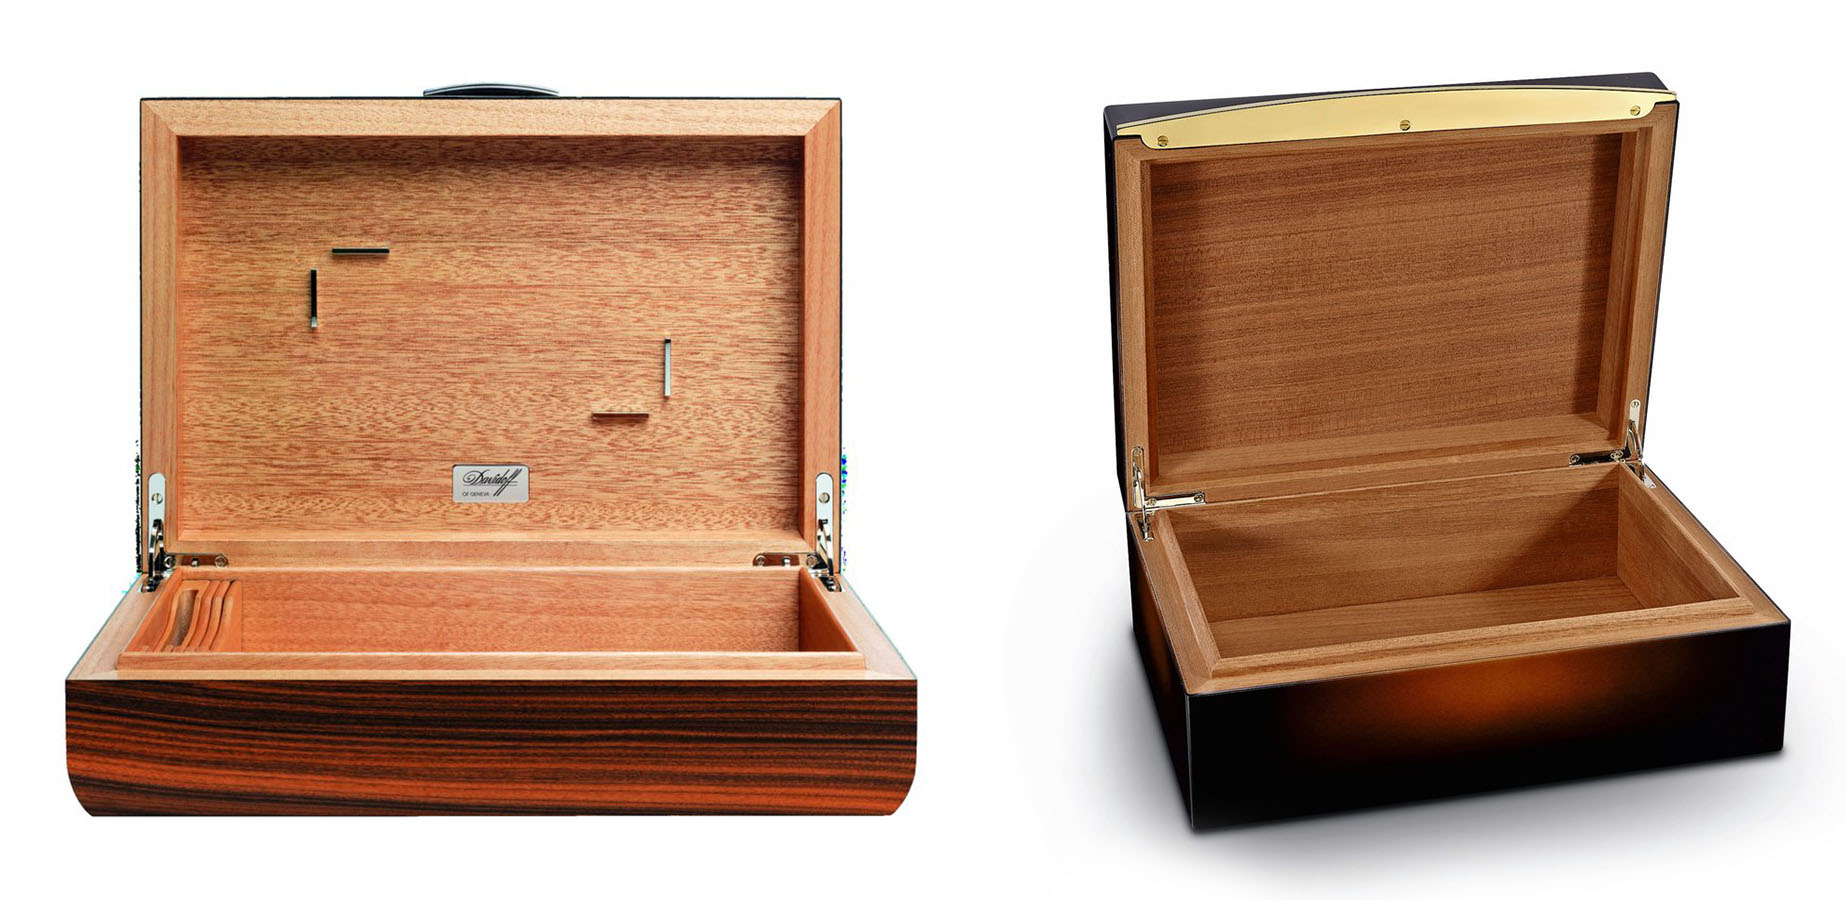 davidoff office humidor rosewood and s.t. dupont humidor egm cigars